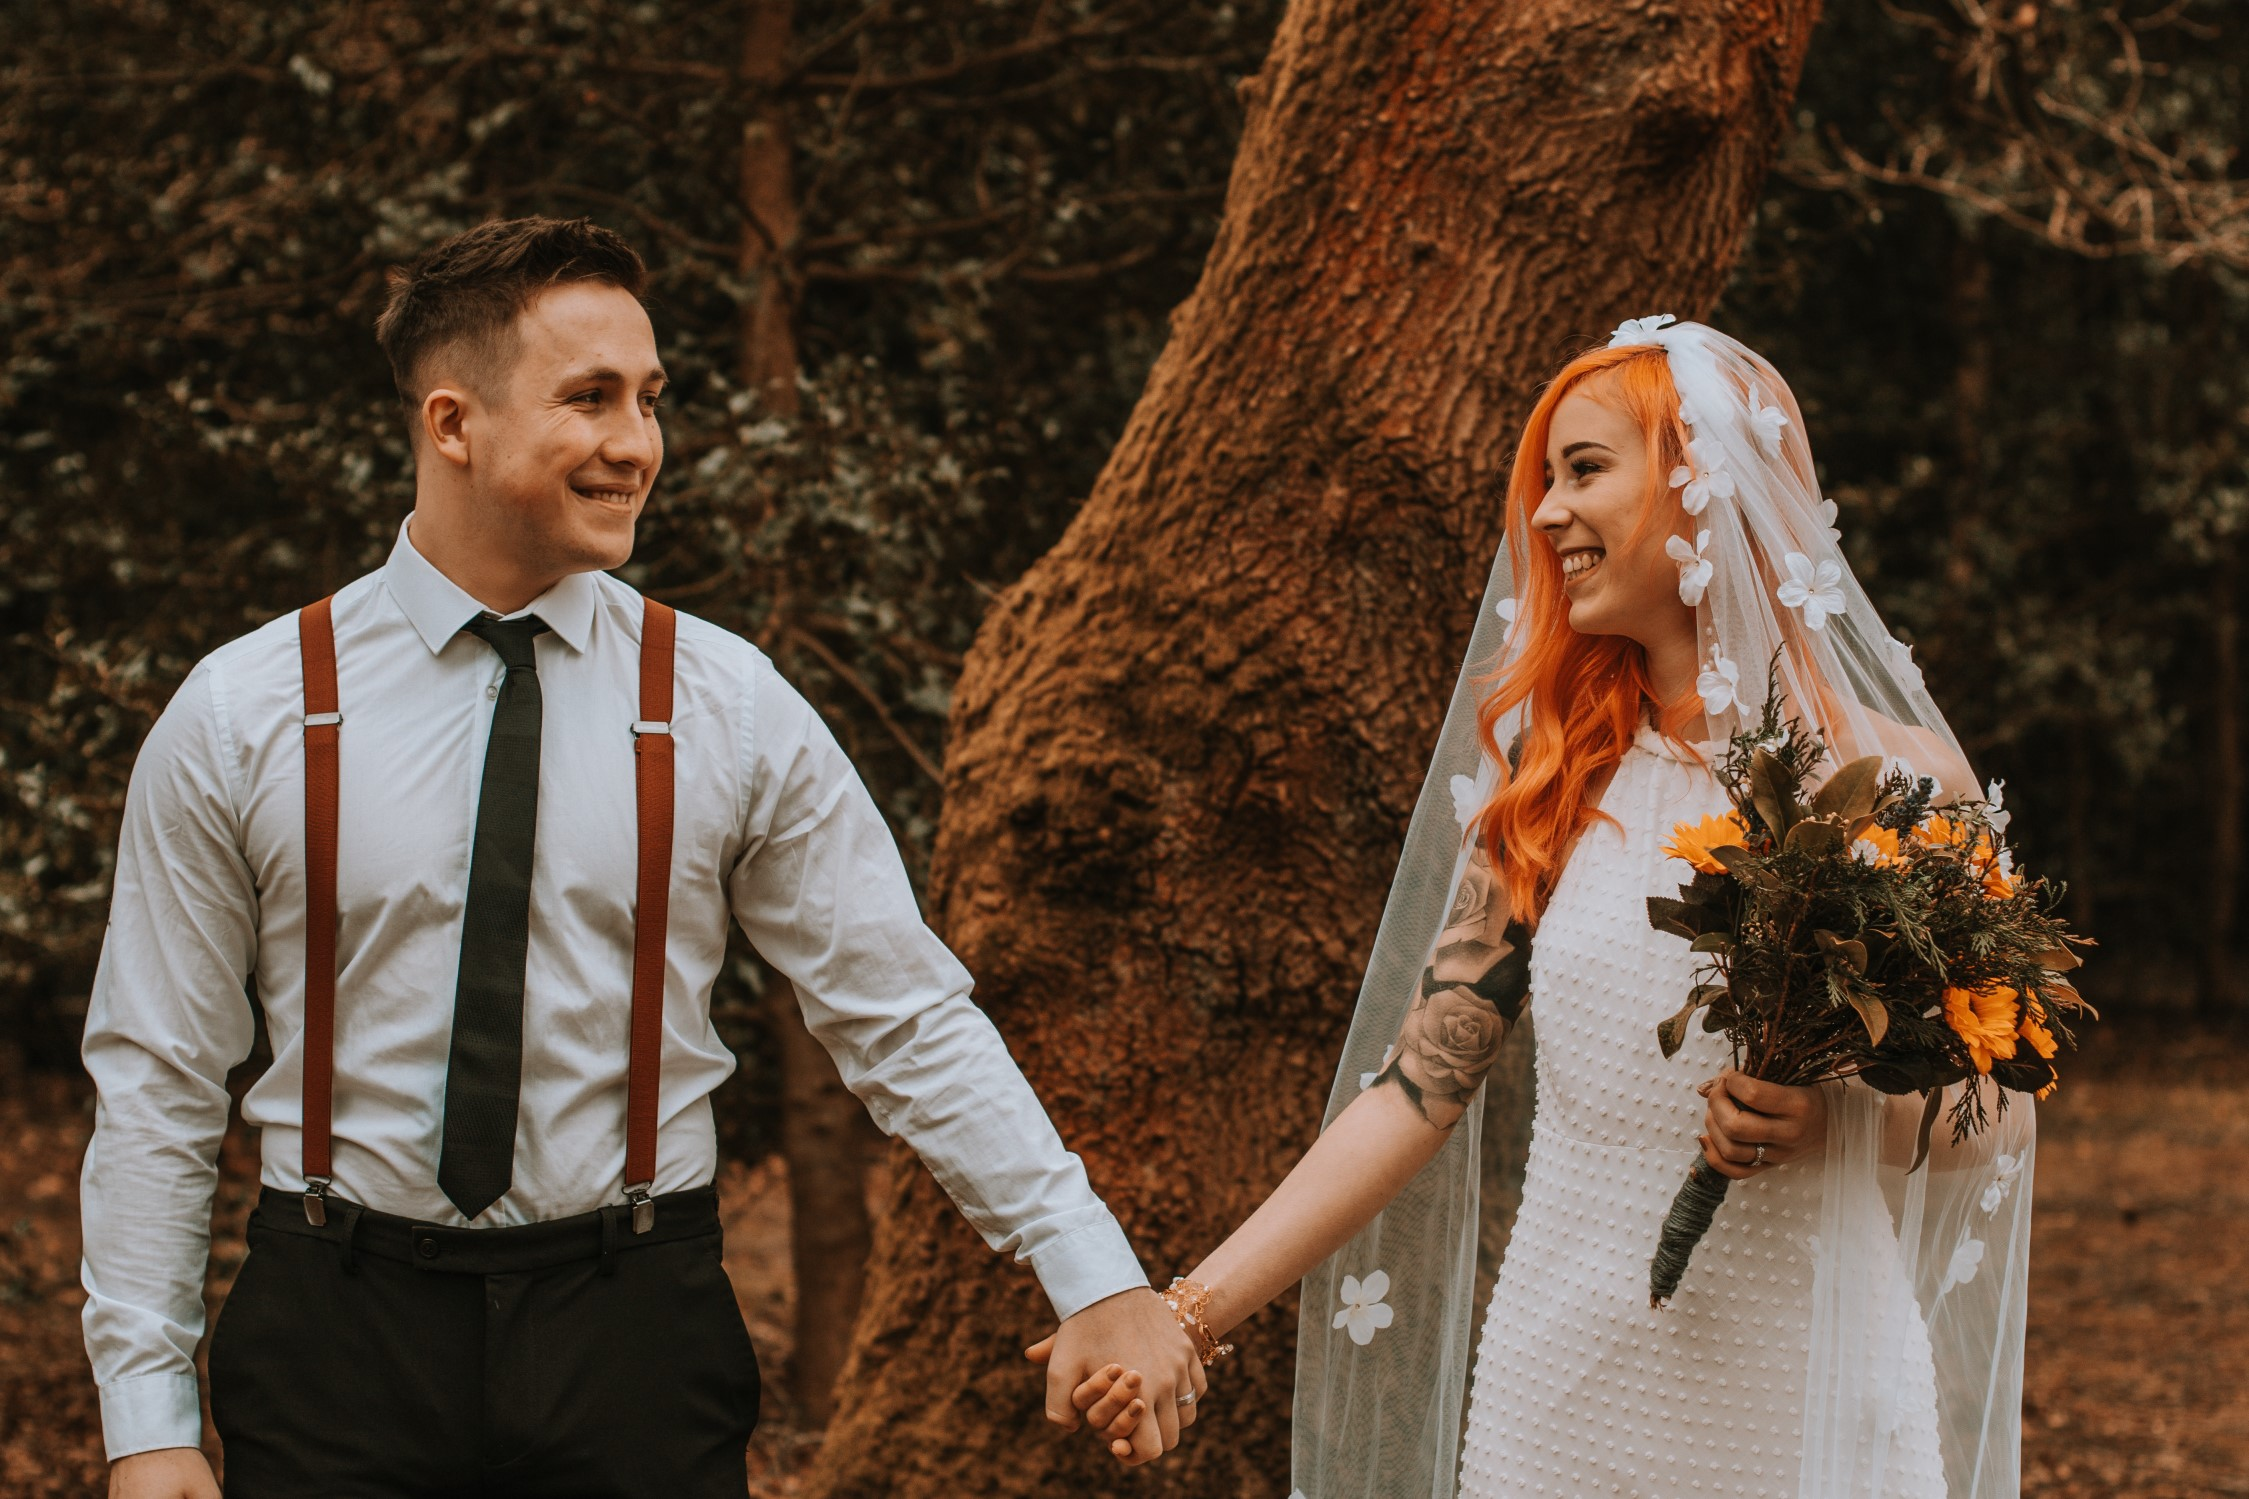 Alternative Forest Wedding - Sammy Leas Retro Emporium -Photography By Wills- alternative wedding - unconventional wedding- edgy woodland wedding-autumn wedding inspiration